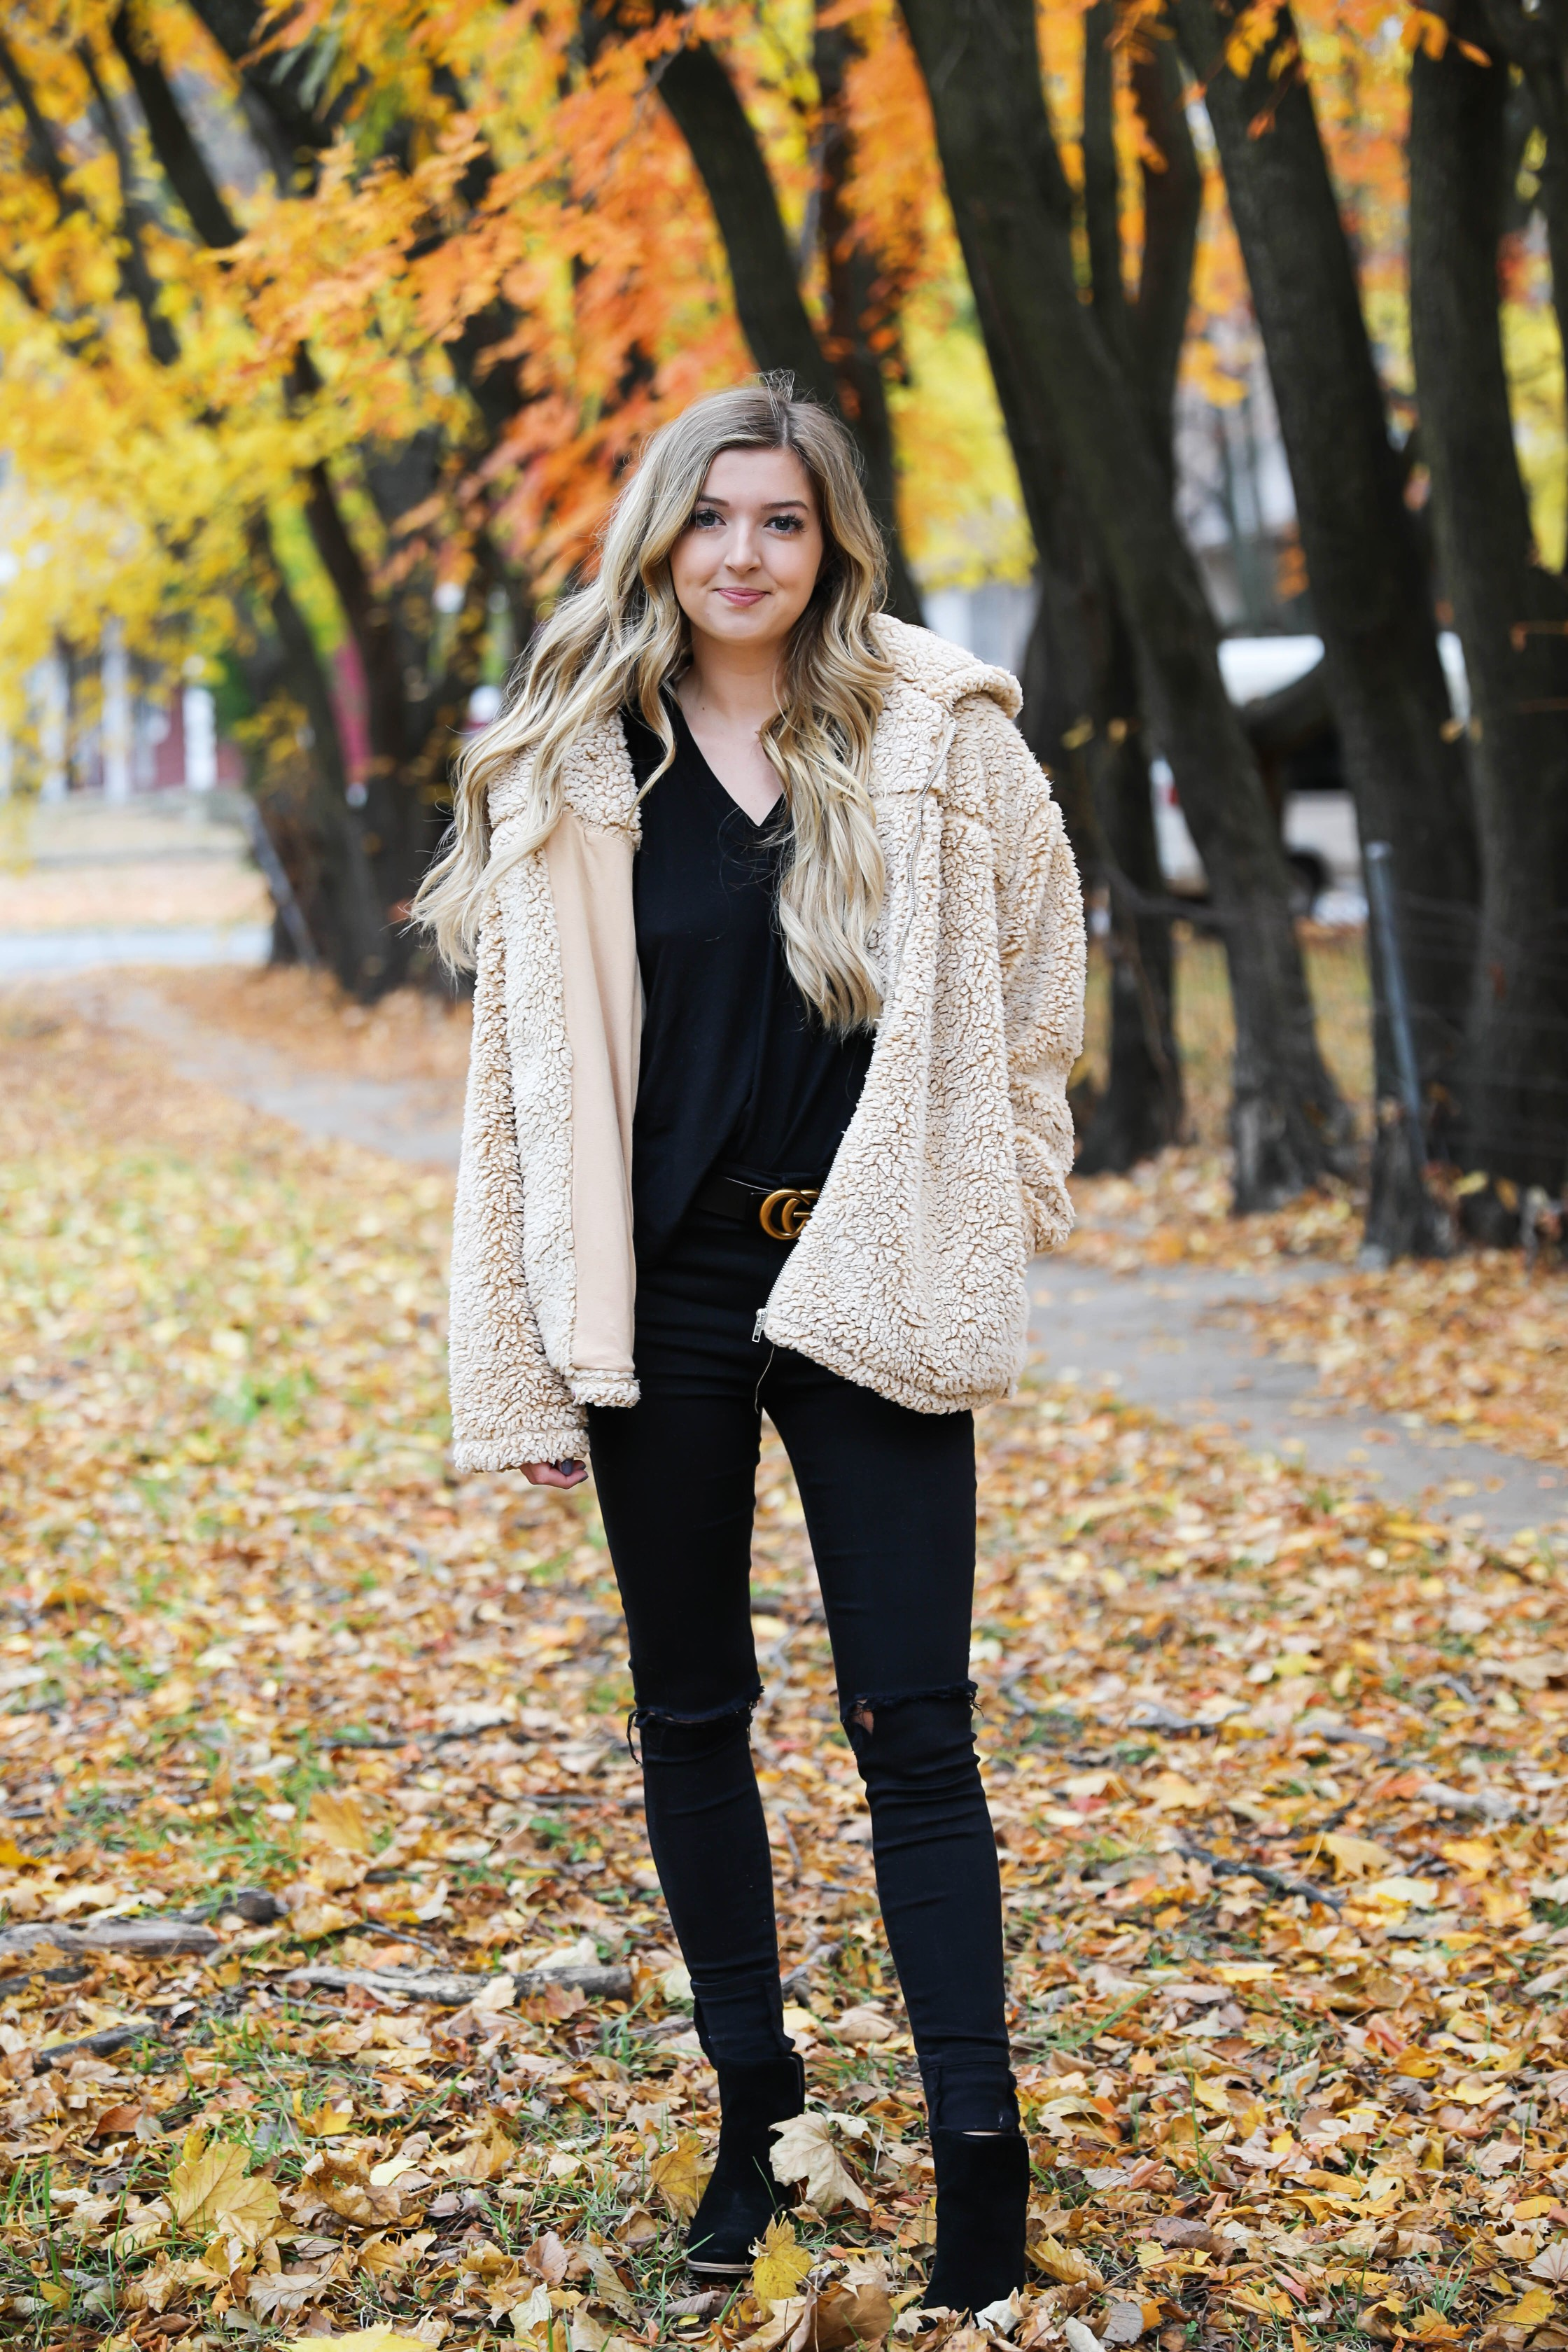 Teddy bear coat roundup! All the comfiest teddy bear fuzzy coats are linked on my blog! I paired mine with an all black outfit and my gucci belt! These are the prettiest photos taken in the fall leaves. Autumn trees are the best! Details on fashion blog daily dose of charm by lauren lindmark